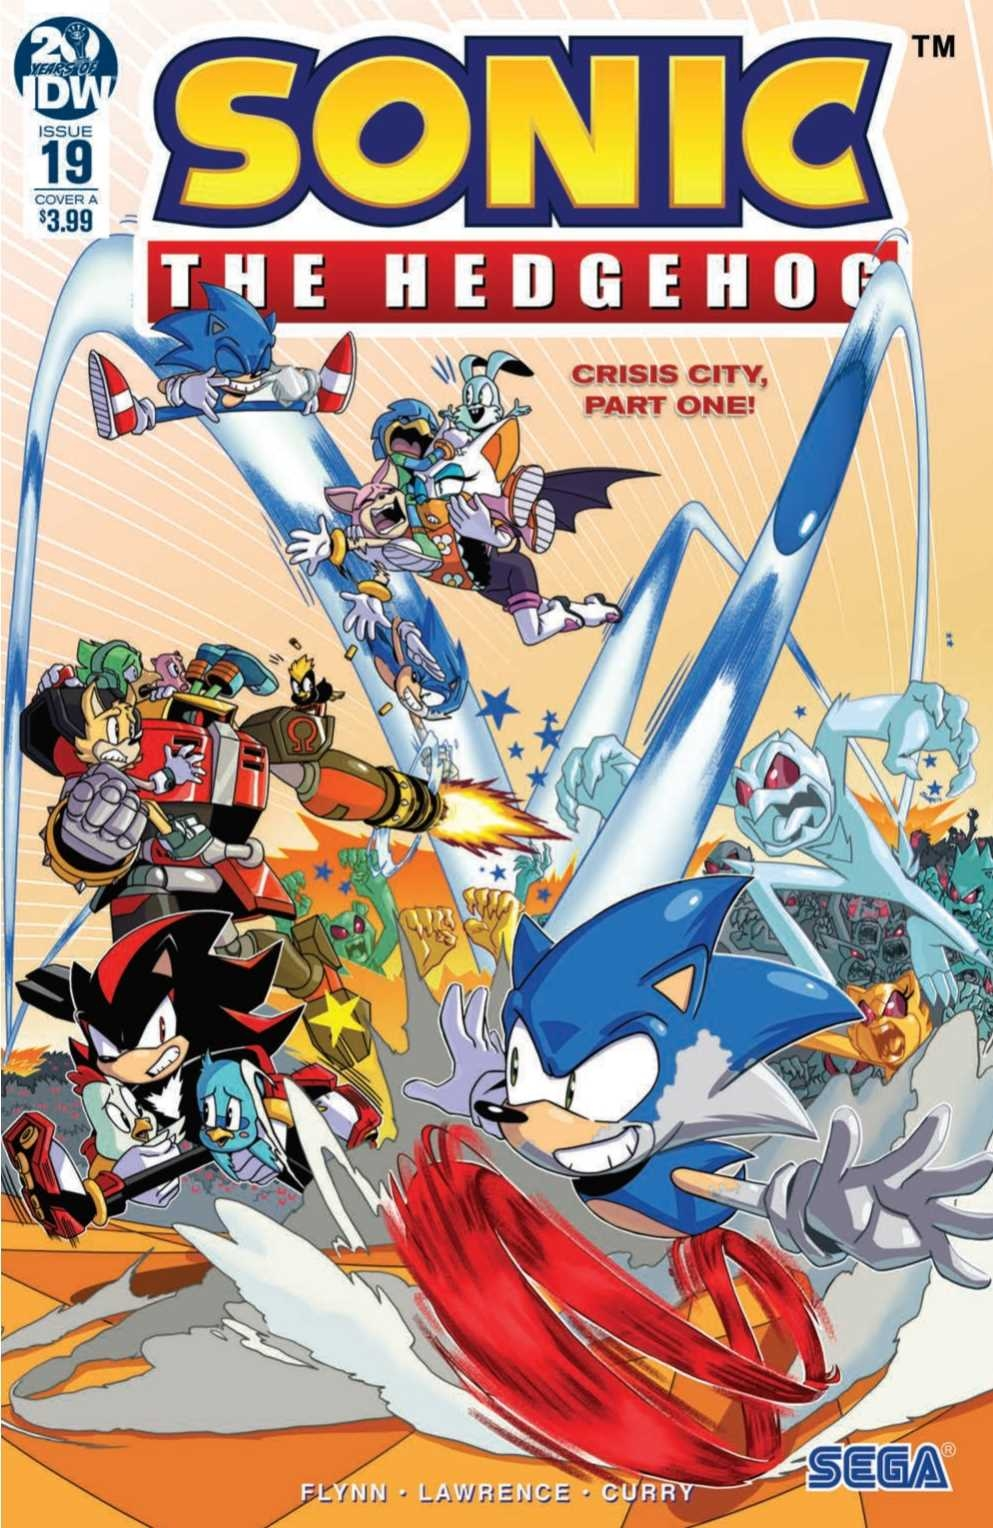 Comic Preview Idw Sonic The Hedgehog 19 The Sonic Stadium